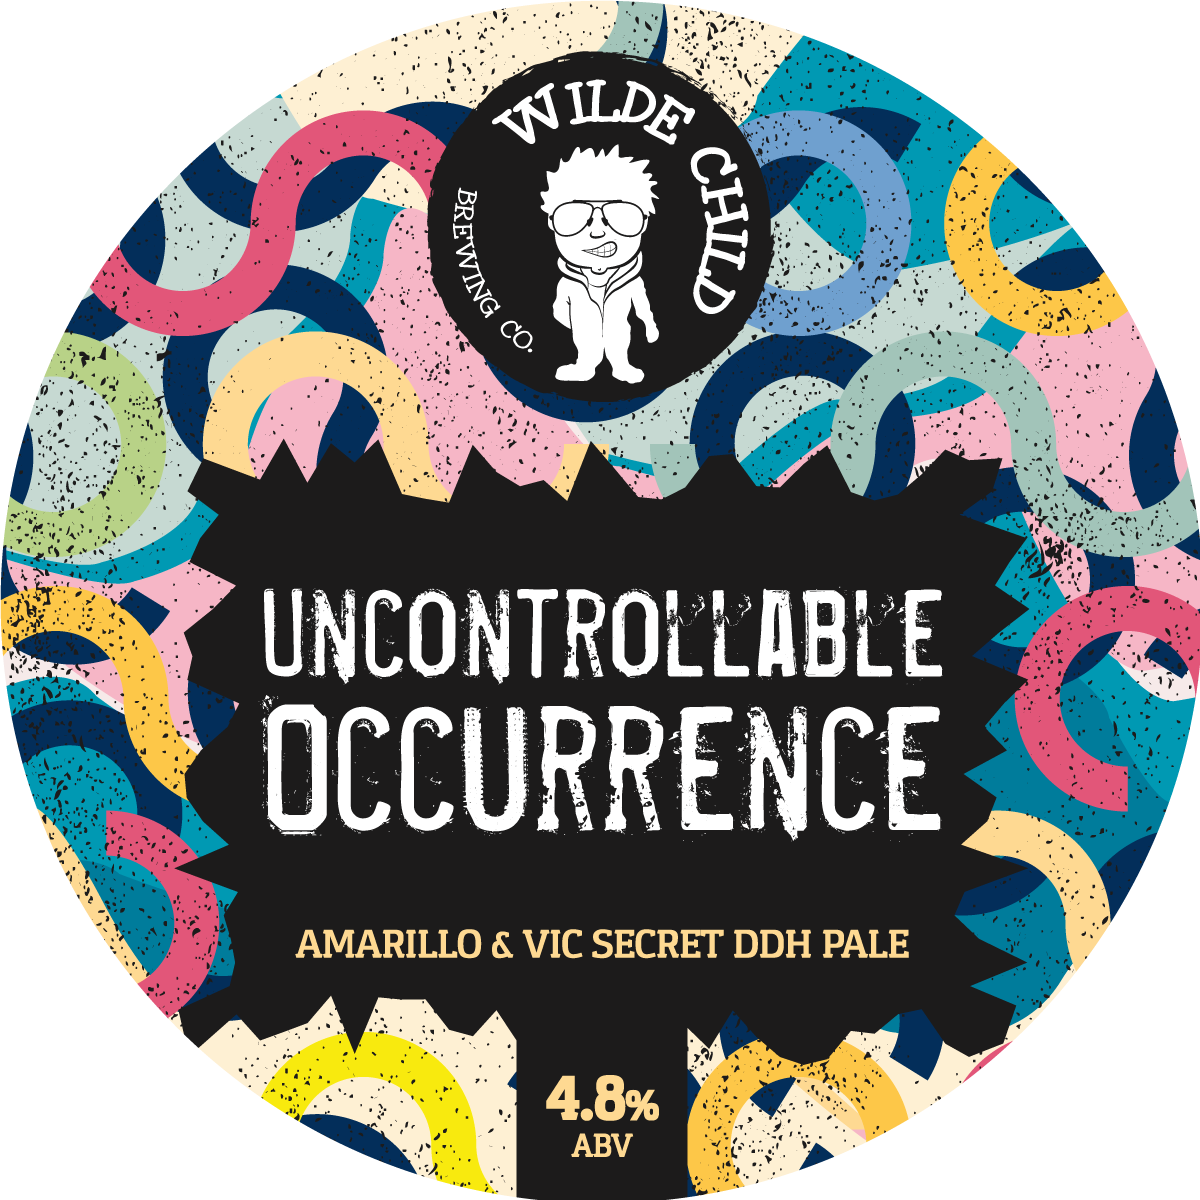 Uncontrollable-Occurrance_Round